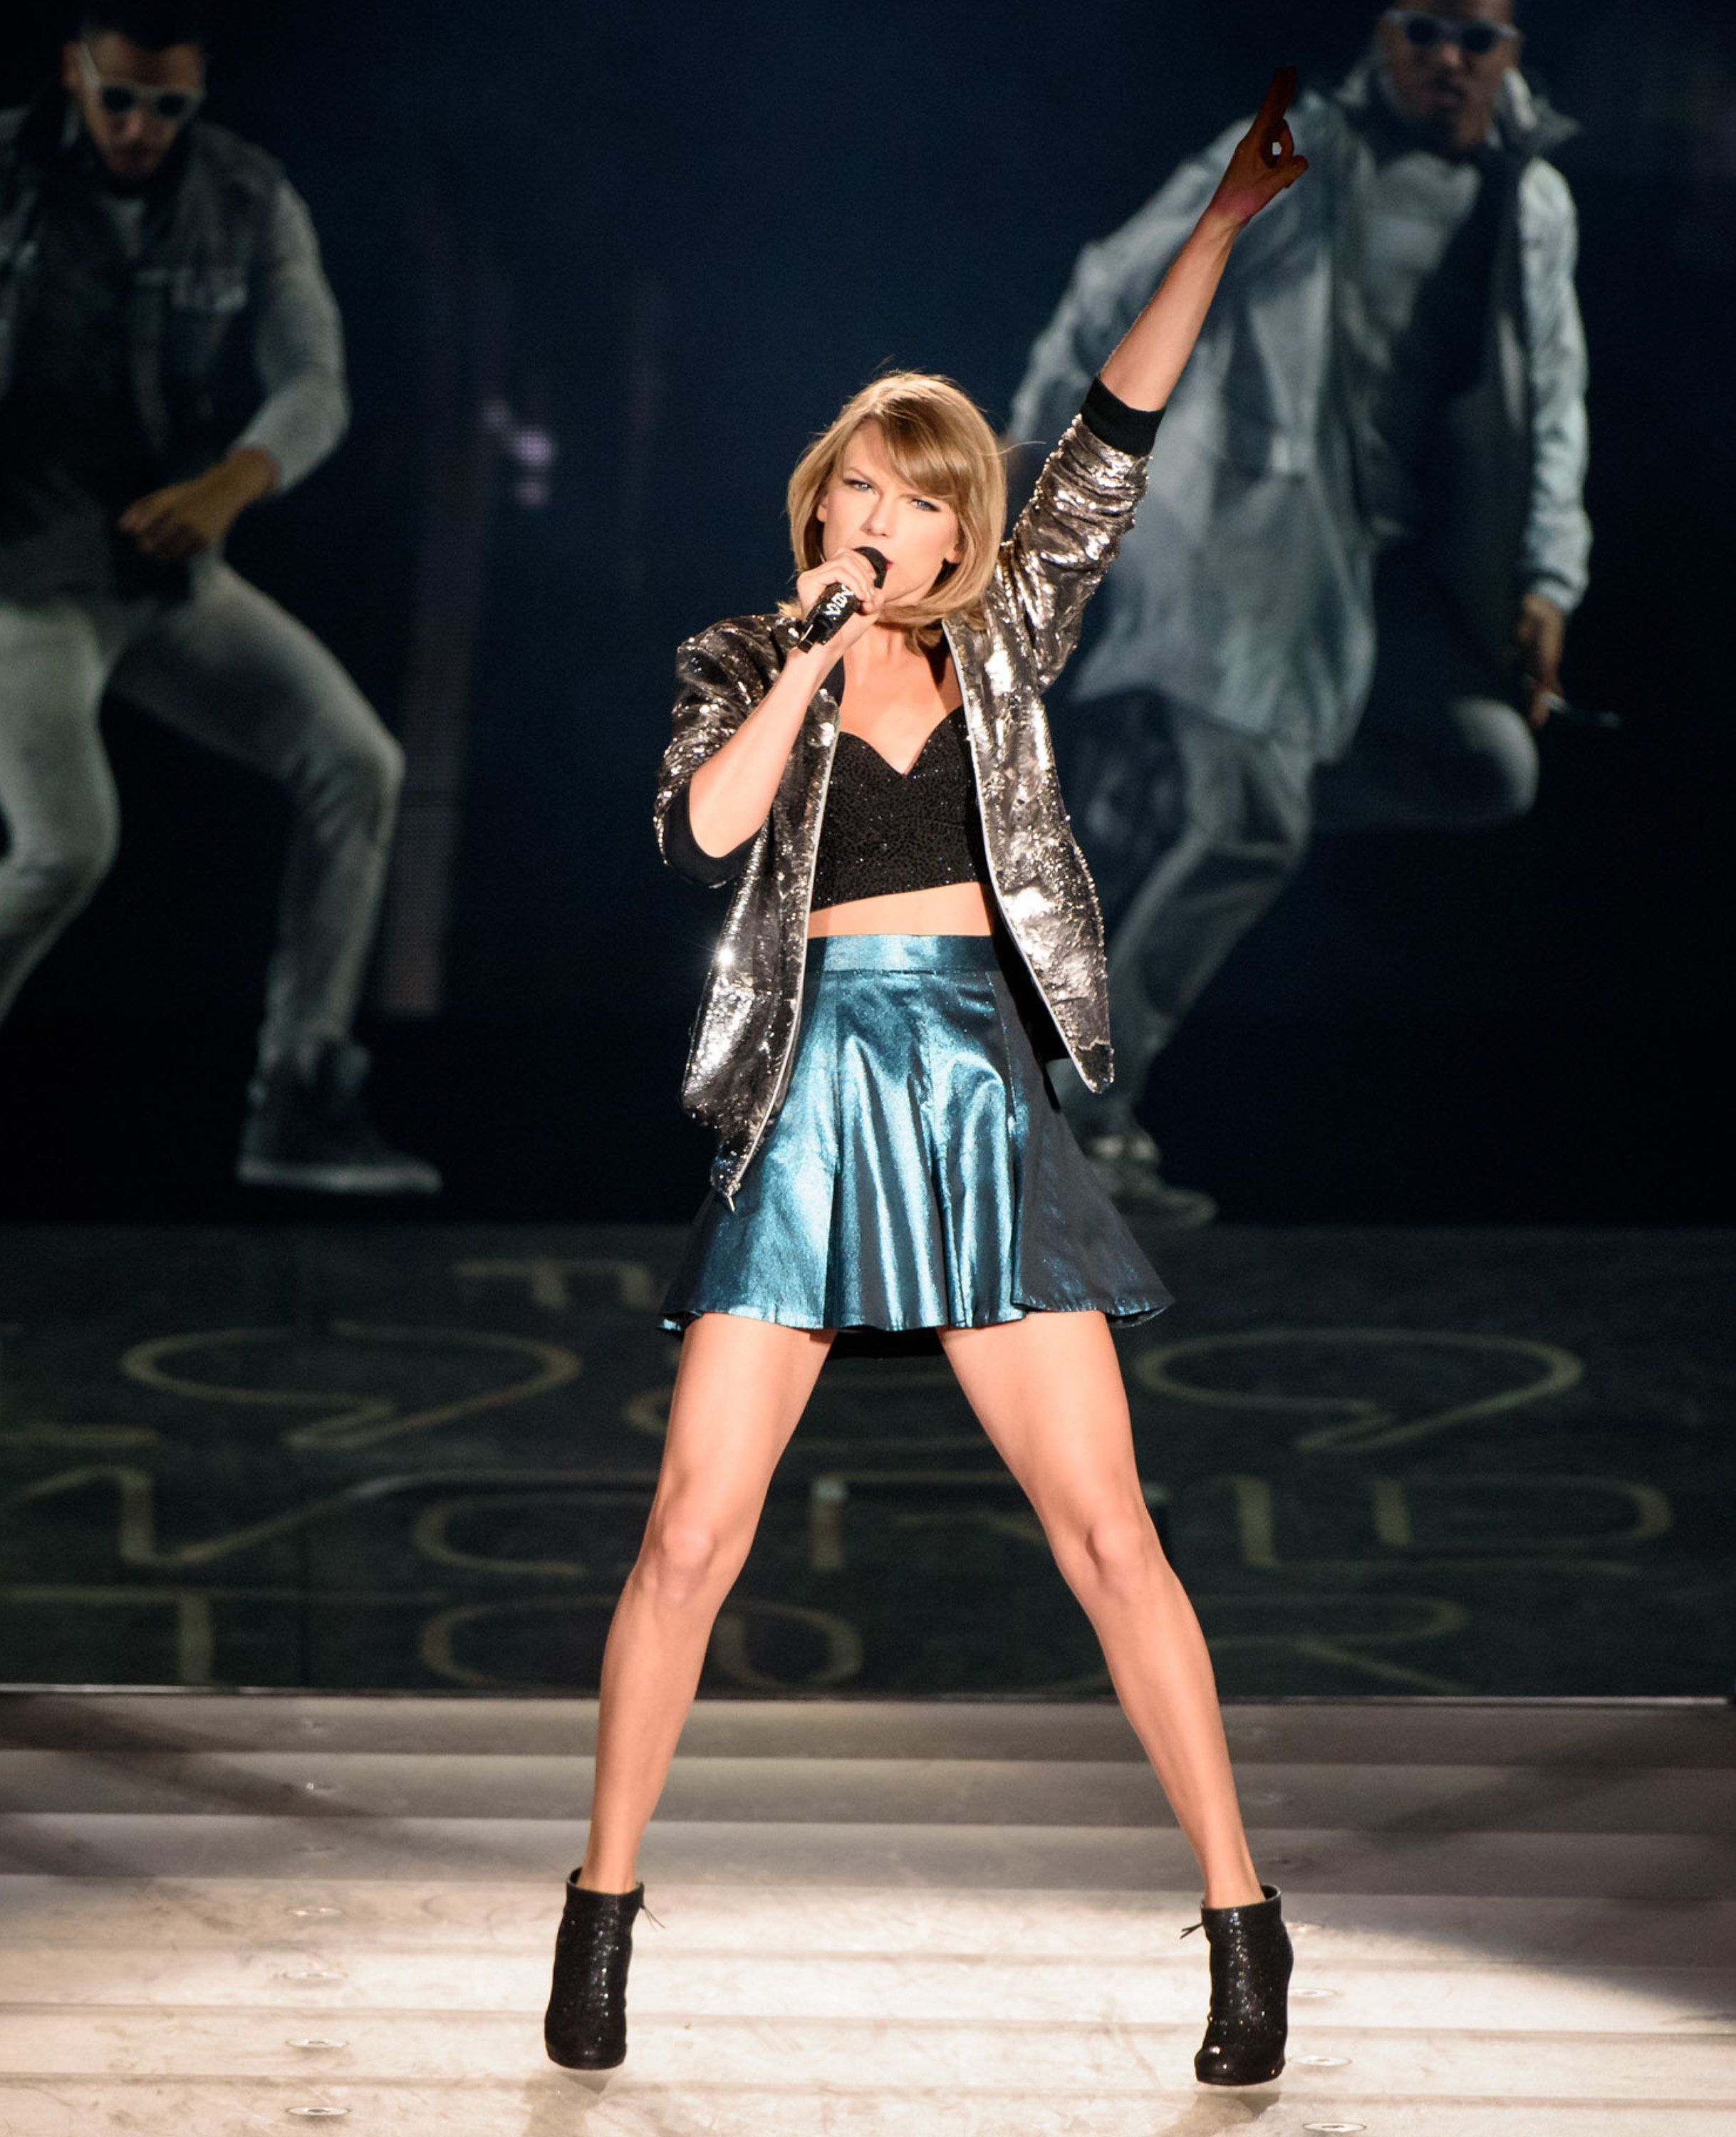 TORONTO, ON - OCTOBER 03:  Taylor Swift performs onstage during the 1989 World Tour Live in Toronto - Night 2 at Rogers Center on October 3, 2015 in Toronto, Canada  (Photo by George Pimentel/LP5/Getty Images for TAS)